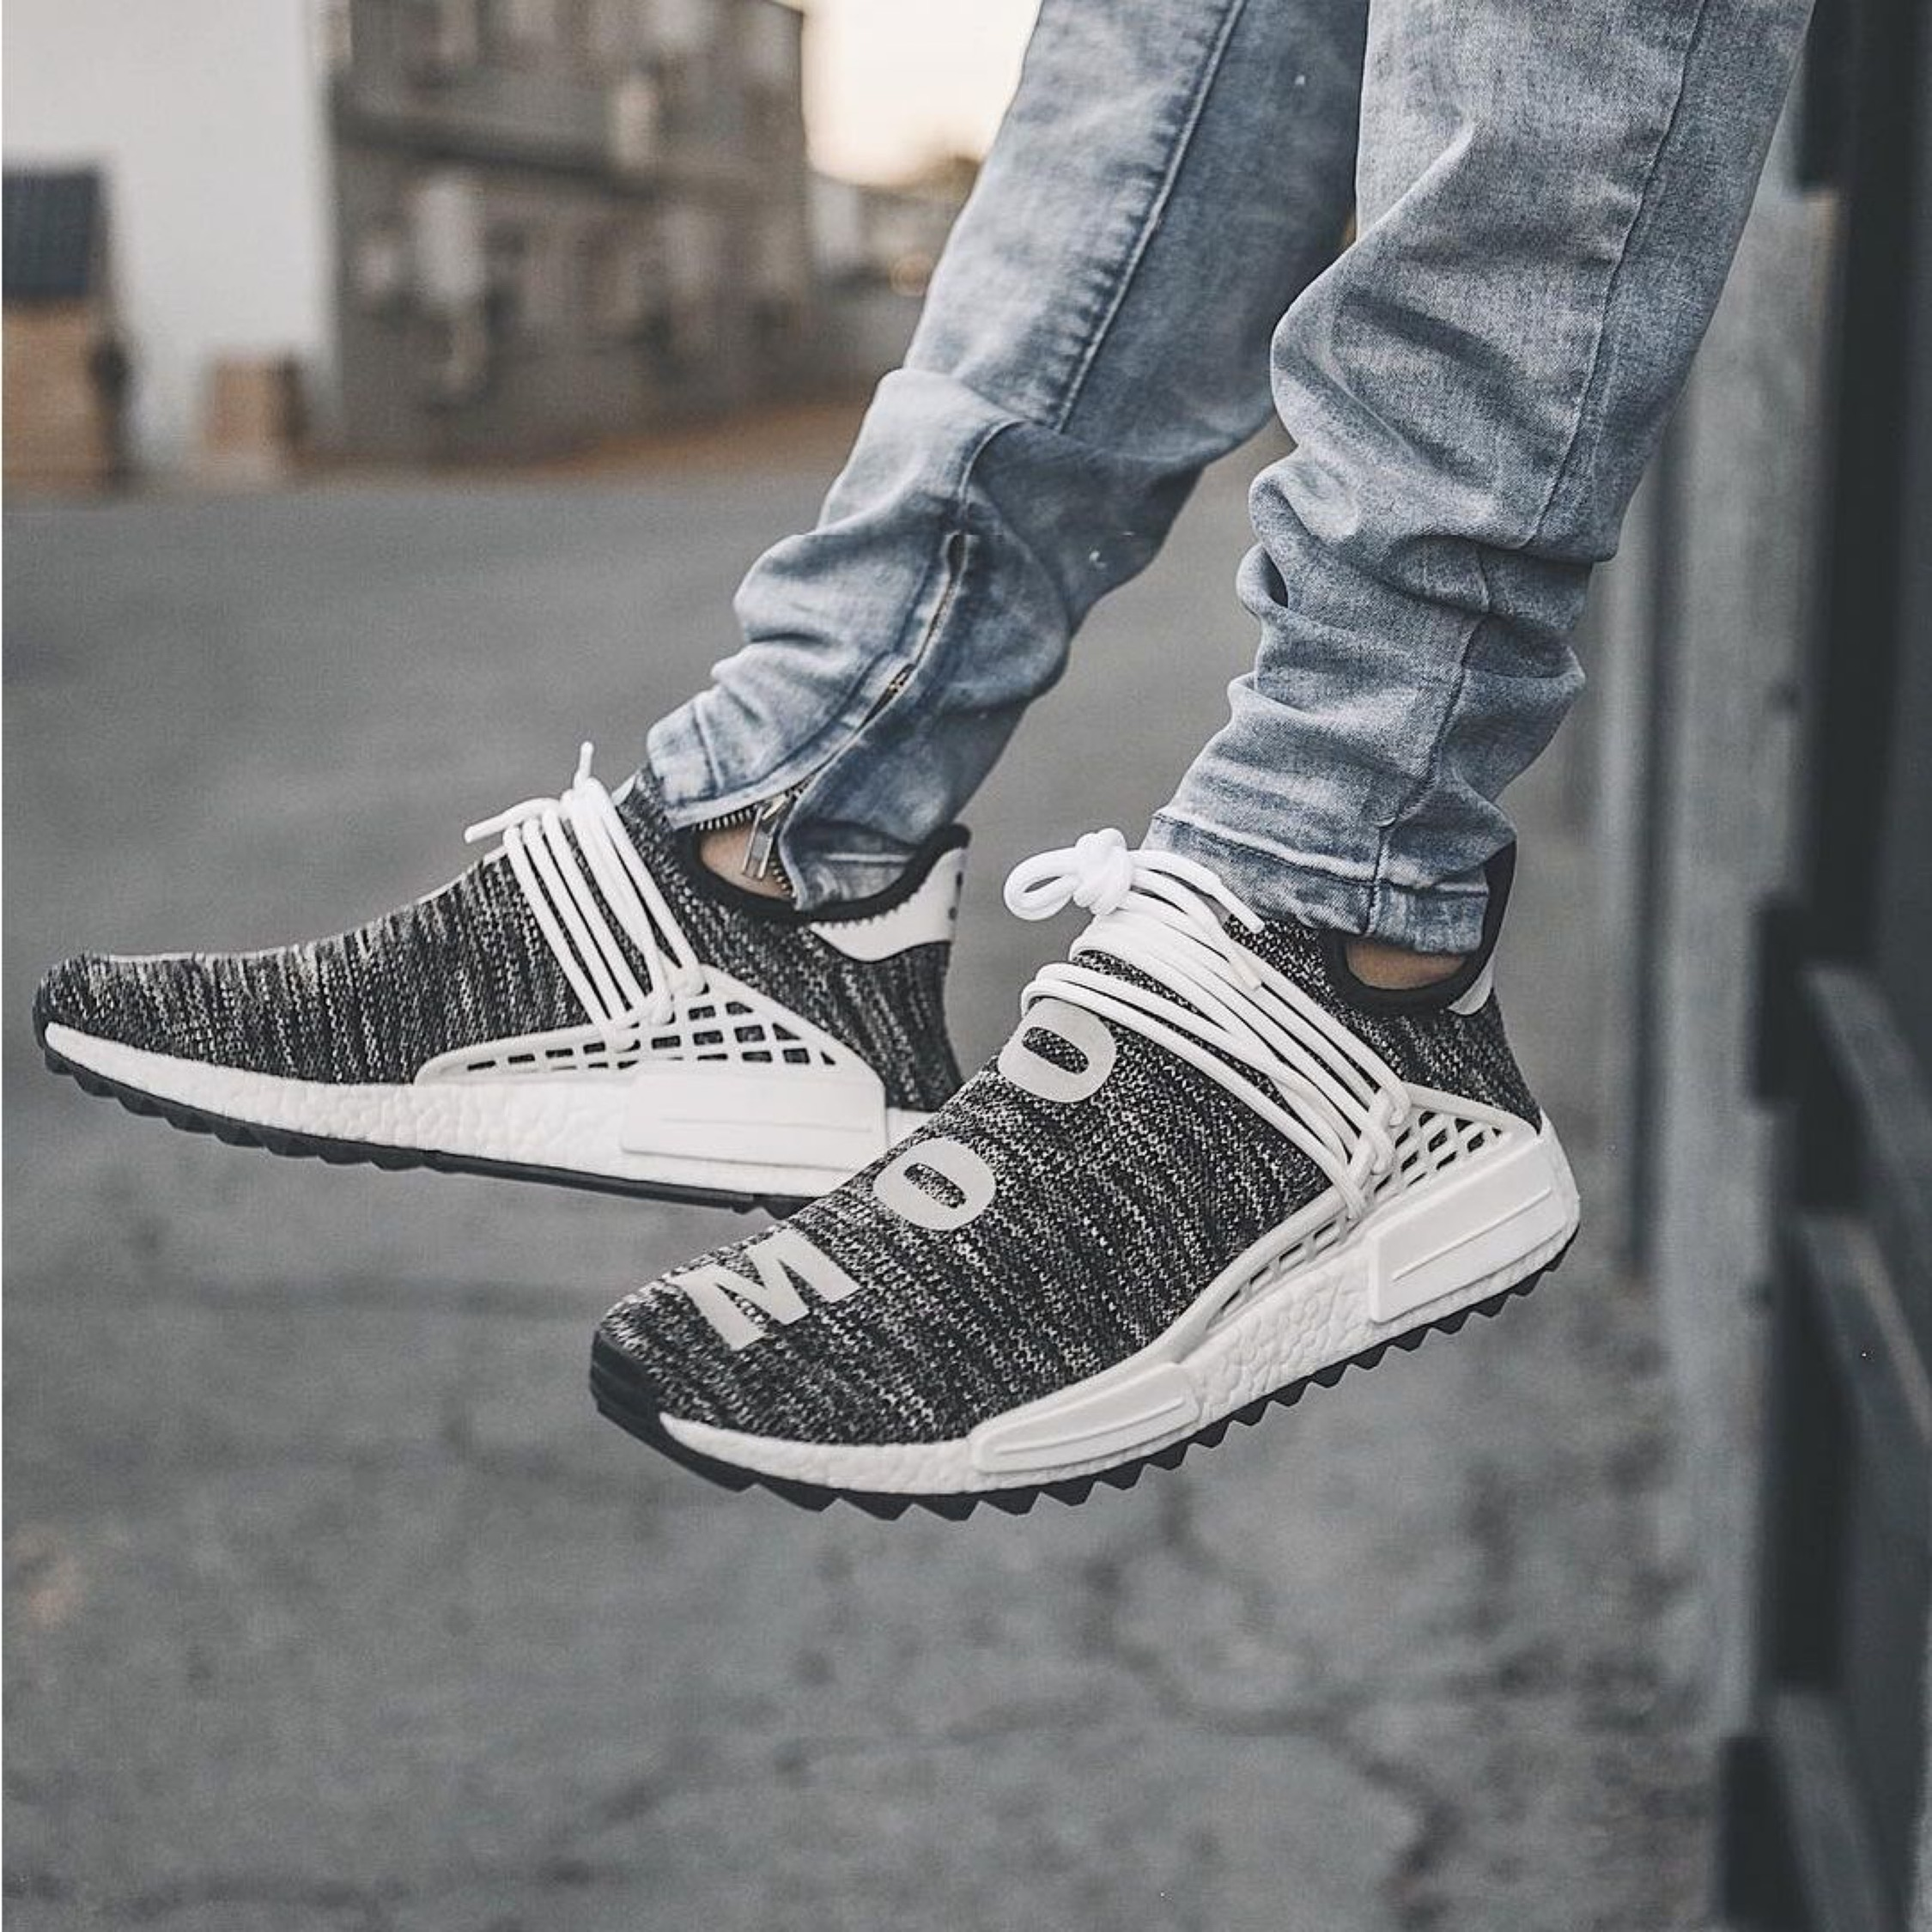 100% authentic ab279 9626d Adidas X Pharrell Nmd Human Race Trail (Oreo)